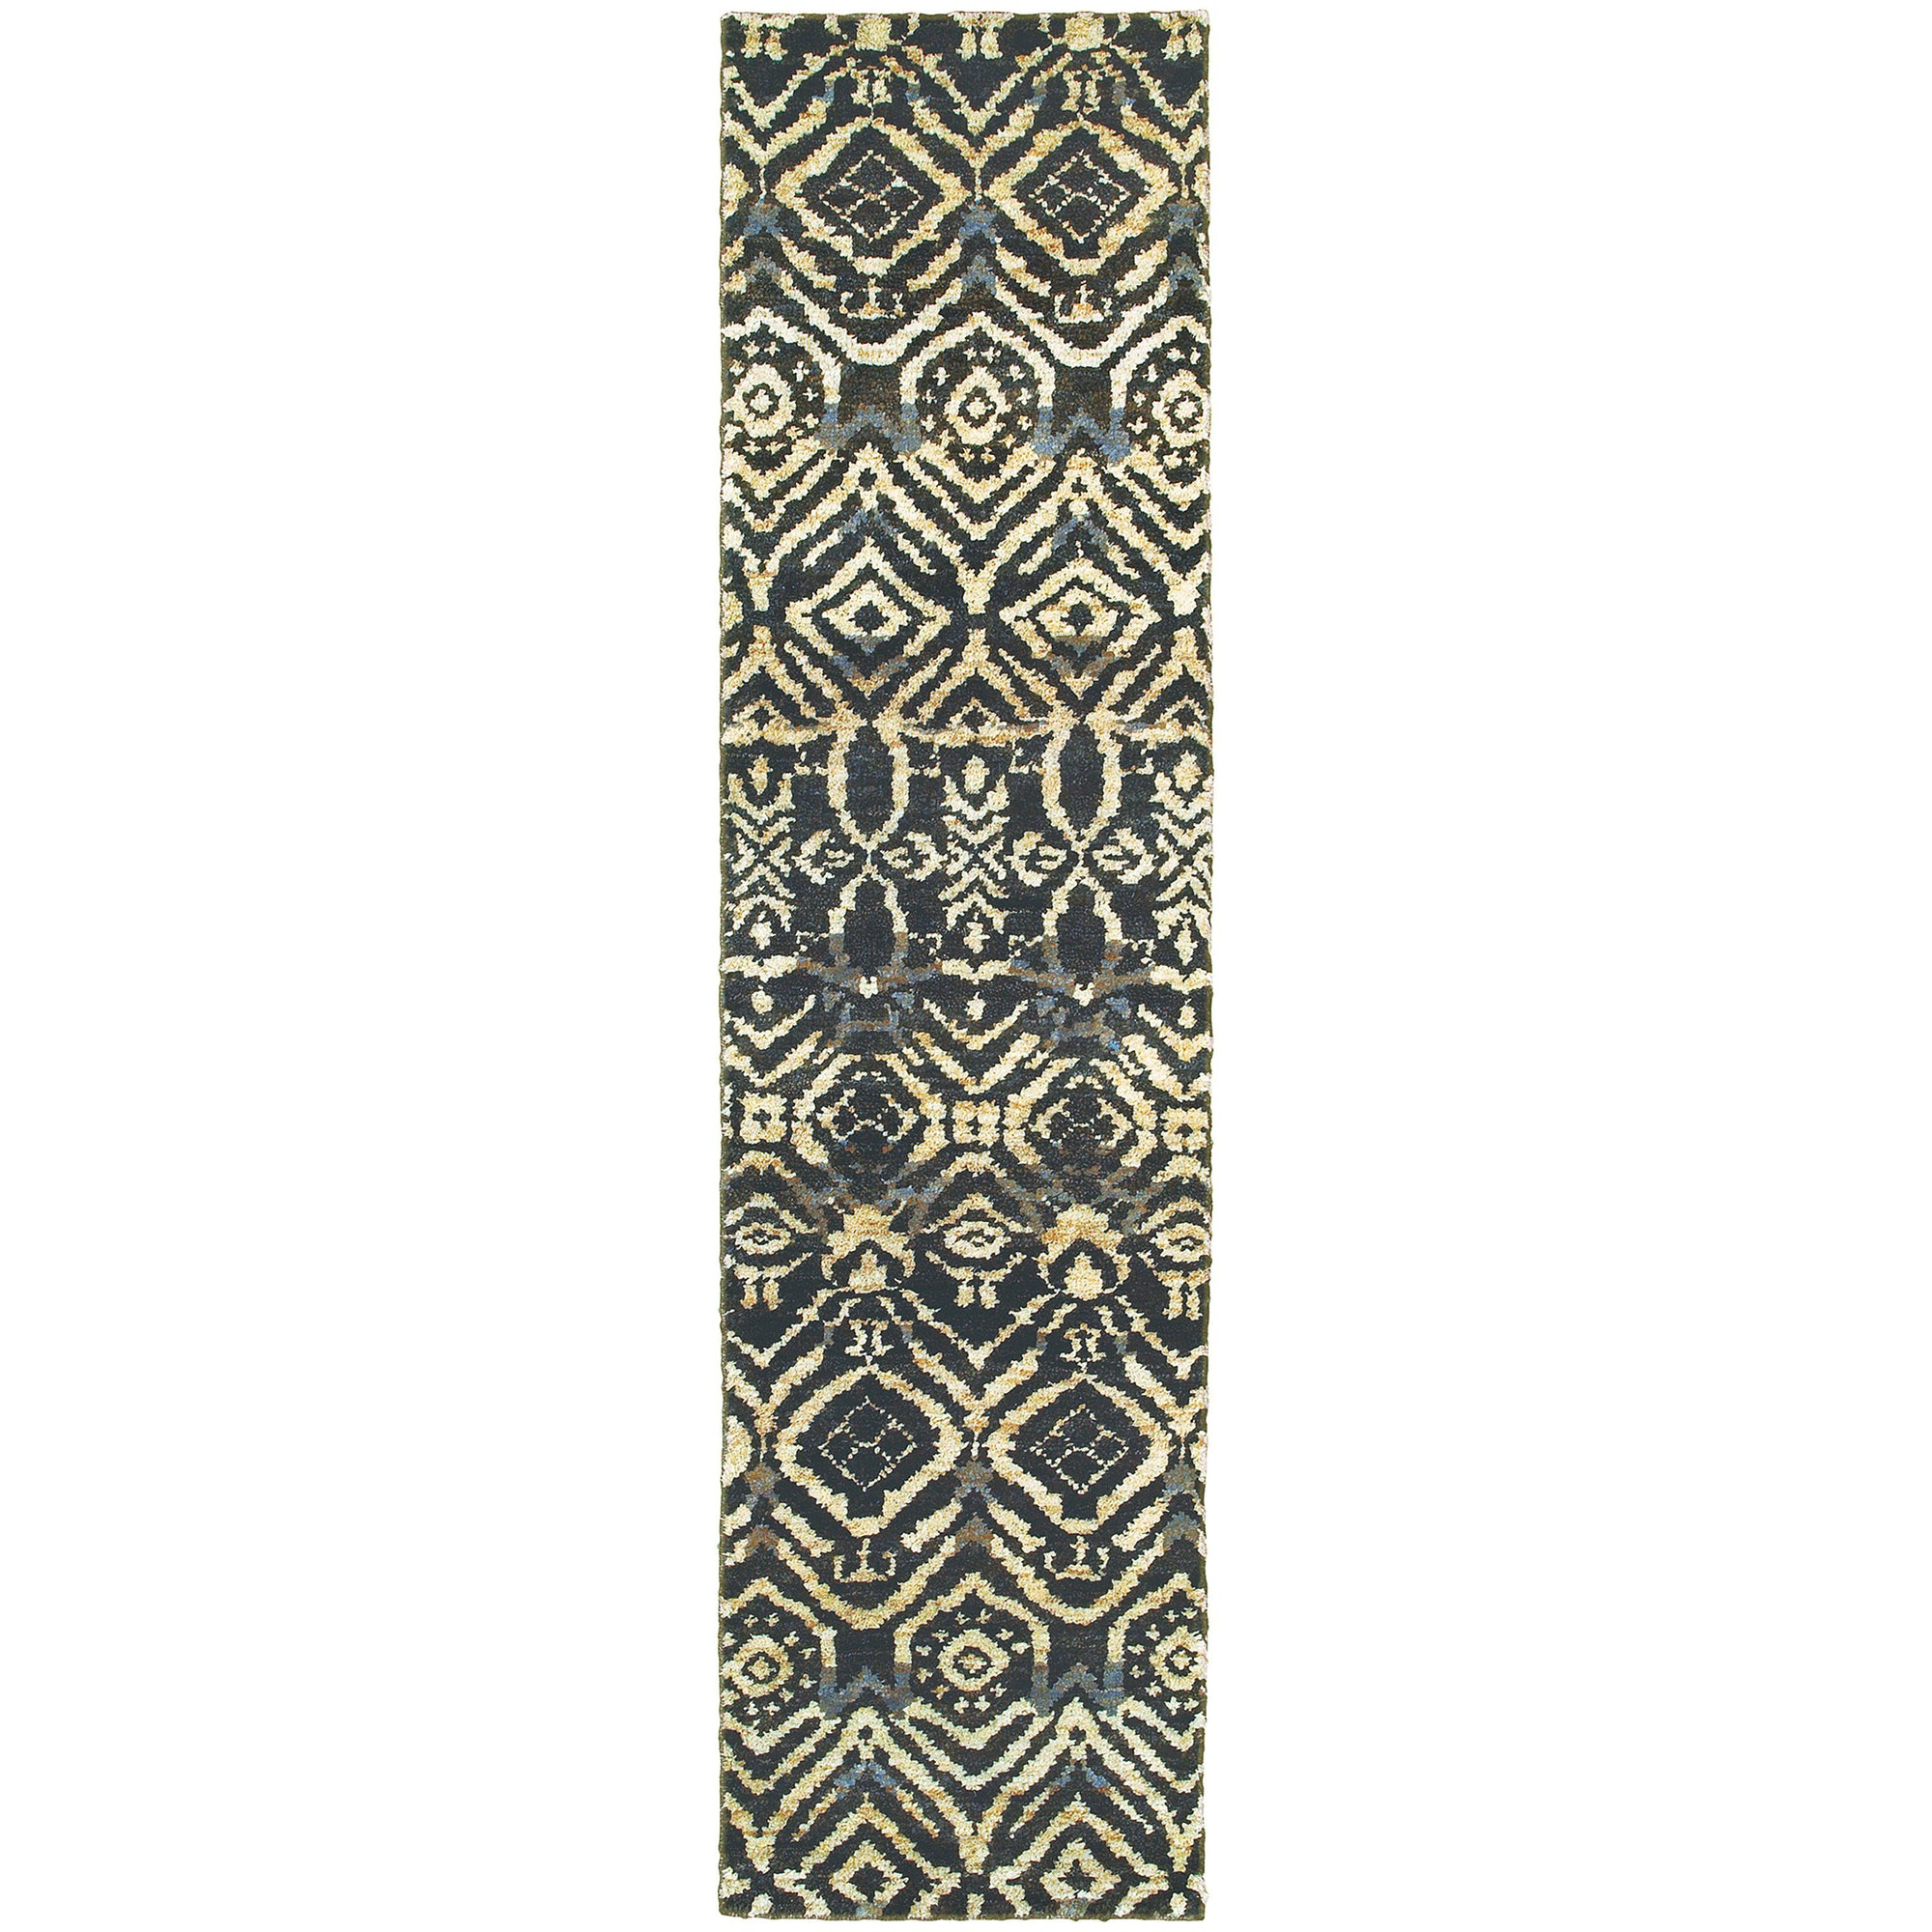 "Tommy Bahama Home Ansley 50904 Black/Beige-Area Rug-Tommy Bahama Home-3' 6"" X 5' 6""-The Rug Truck"